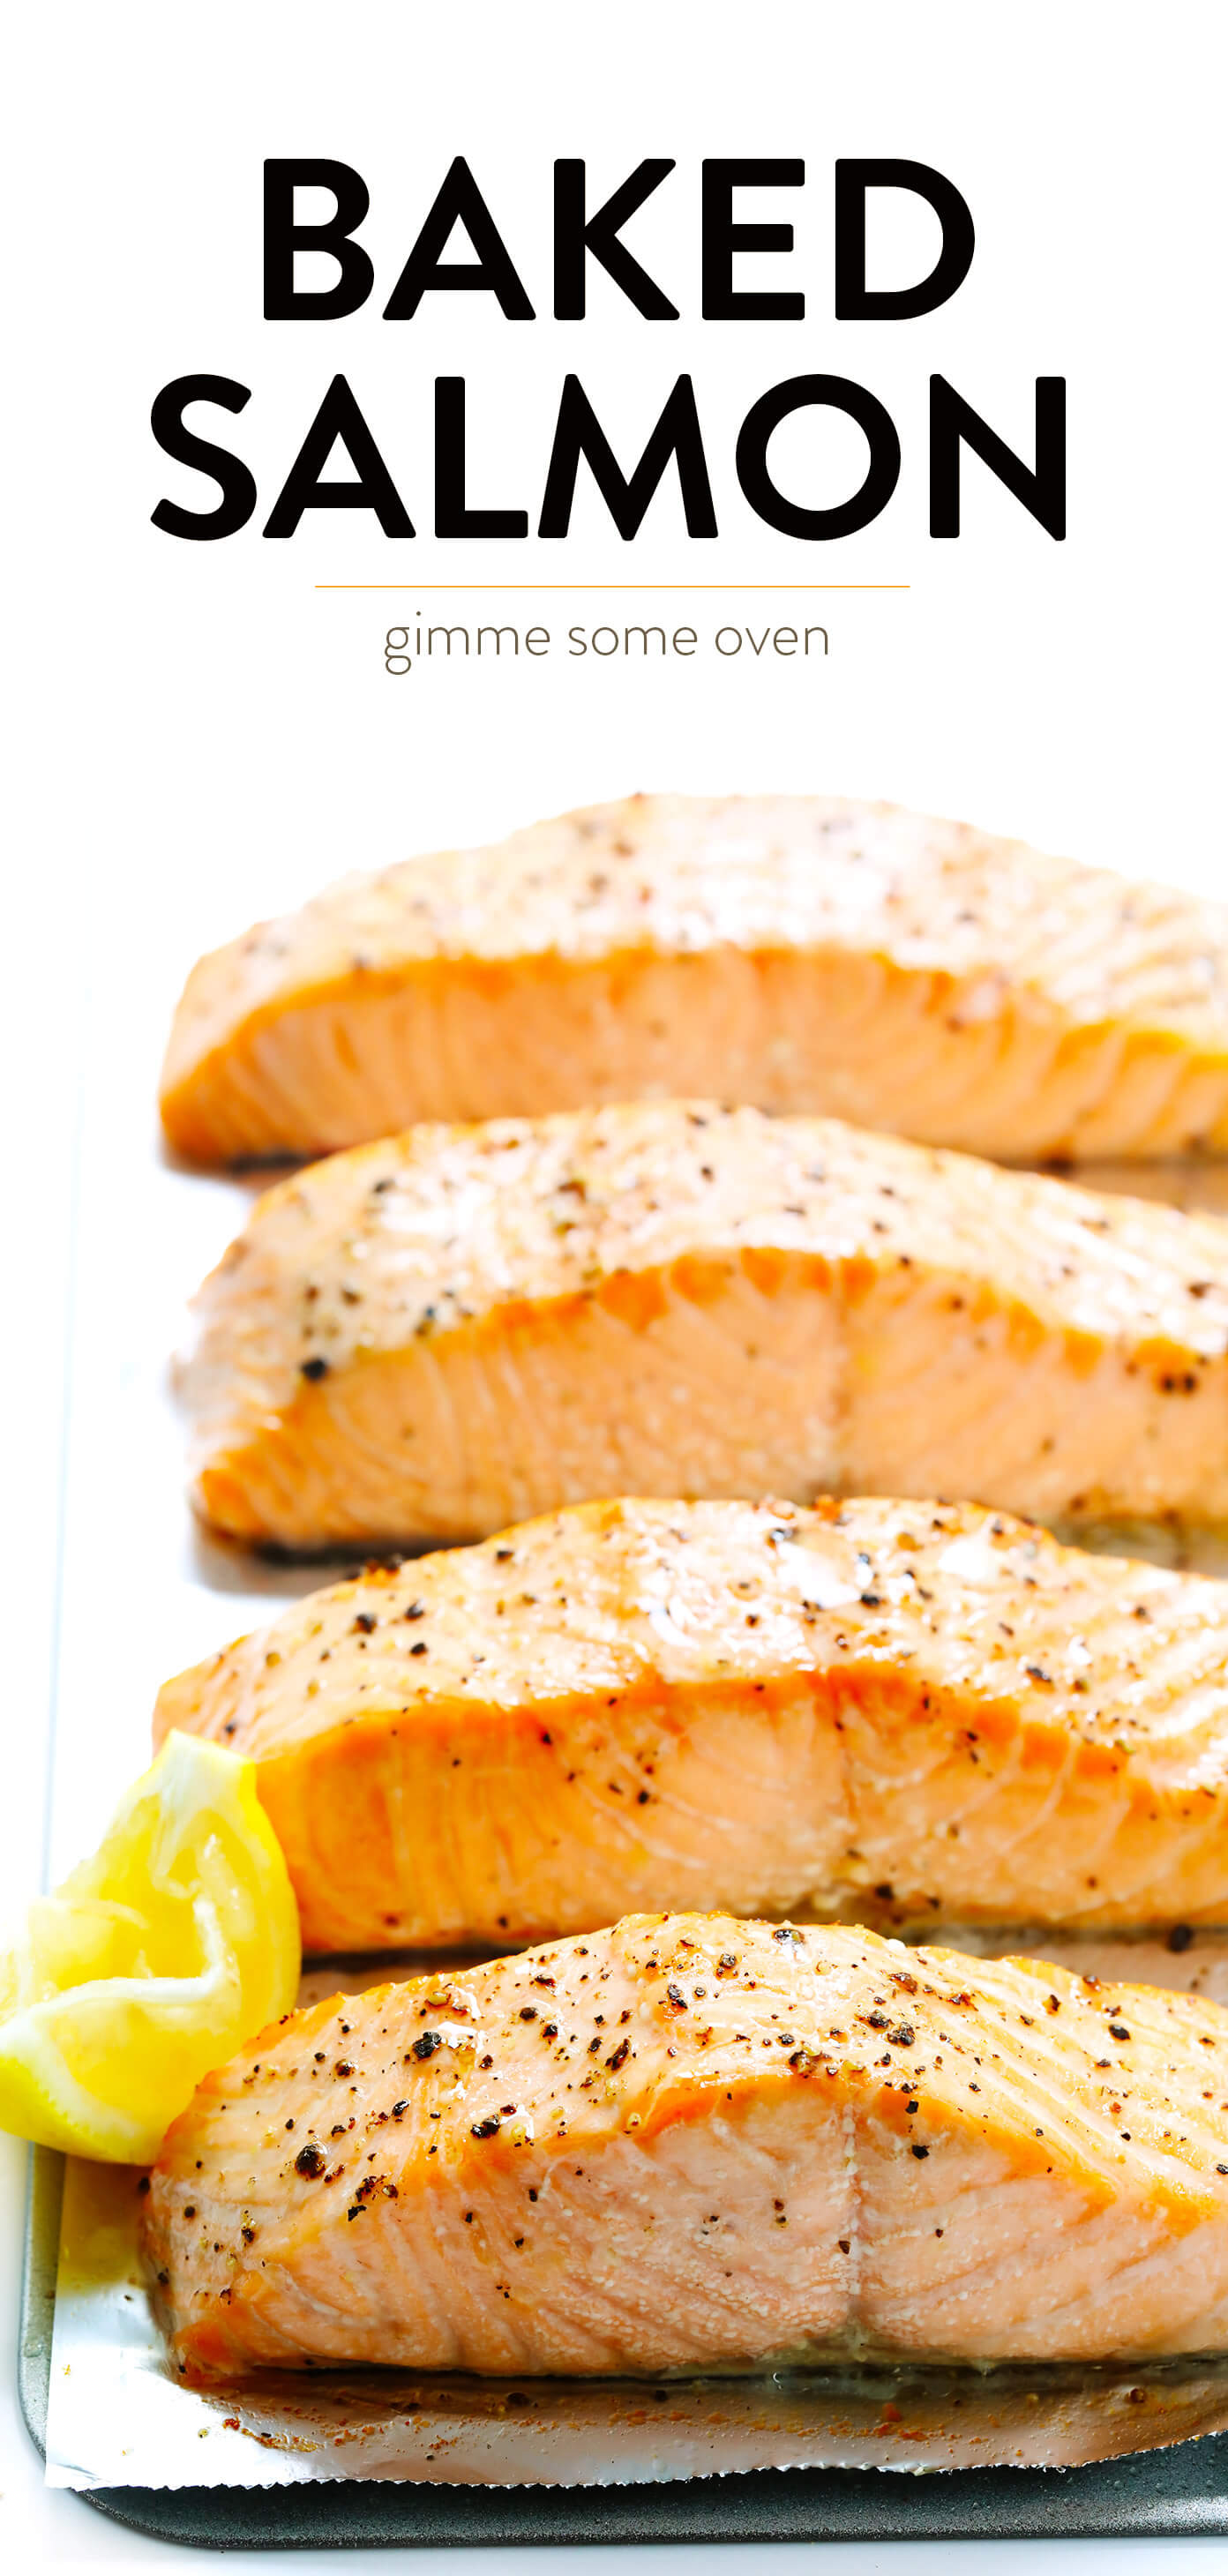 Baked Salmon Recipe   Gimme Some Oven